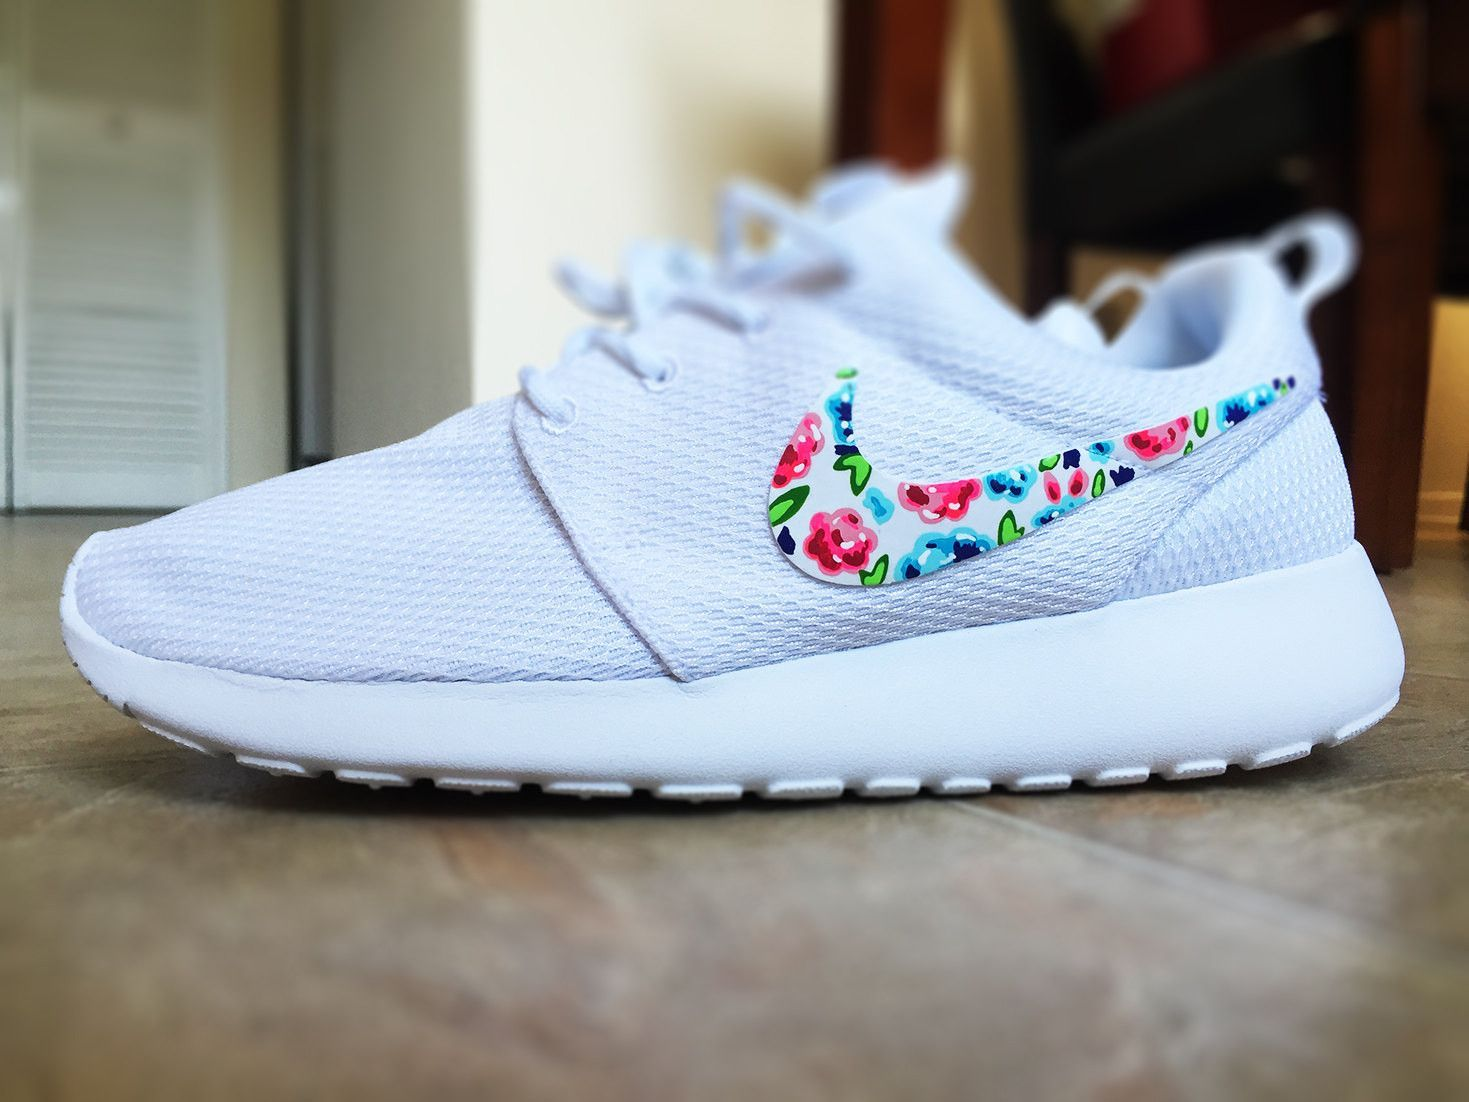 official photos ba7f7 c9dda Womens Custom Nike Roshe Run sneakers, Floral design, All white with floral  pattern, womens white custom roshe